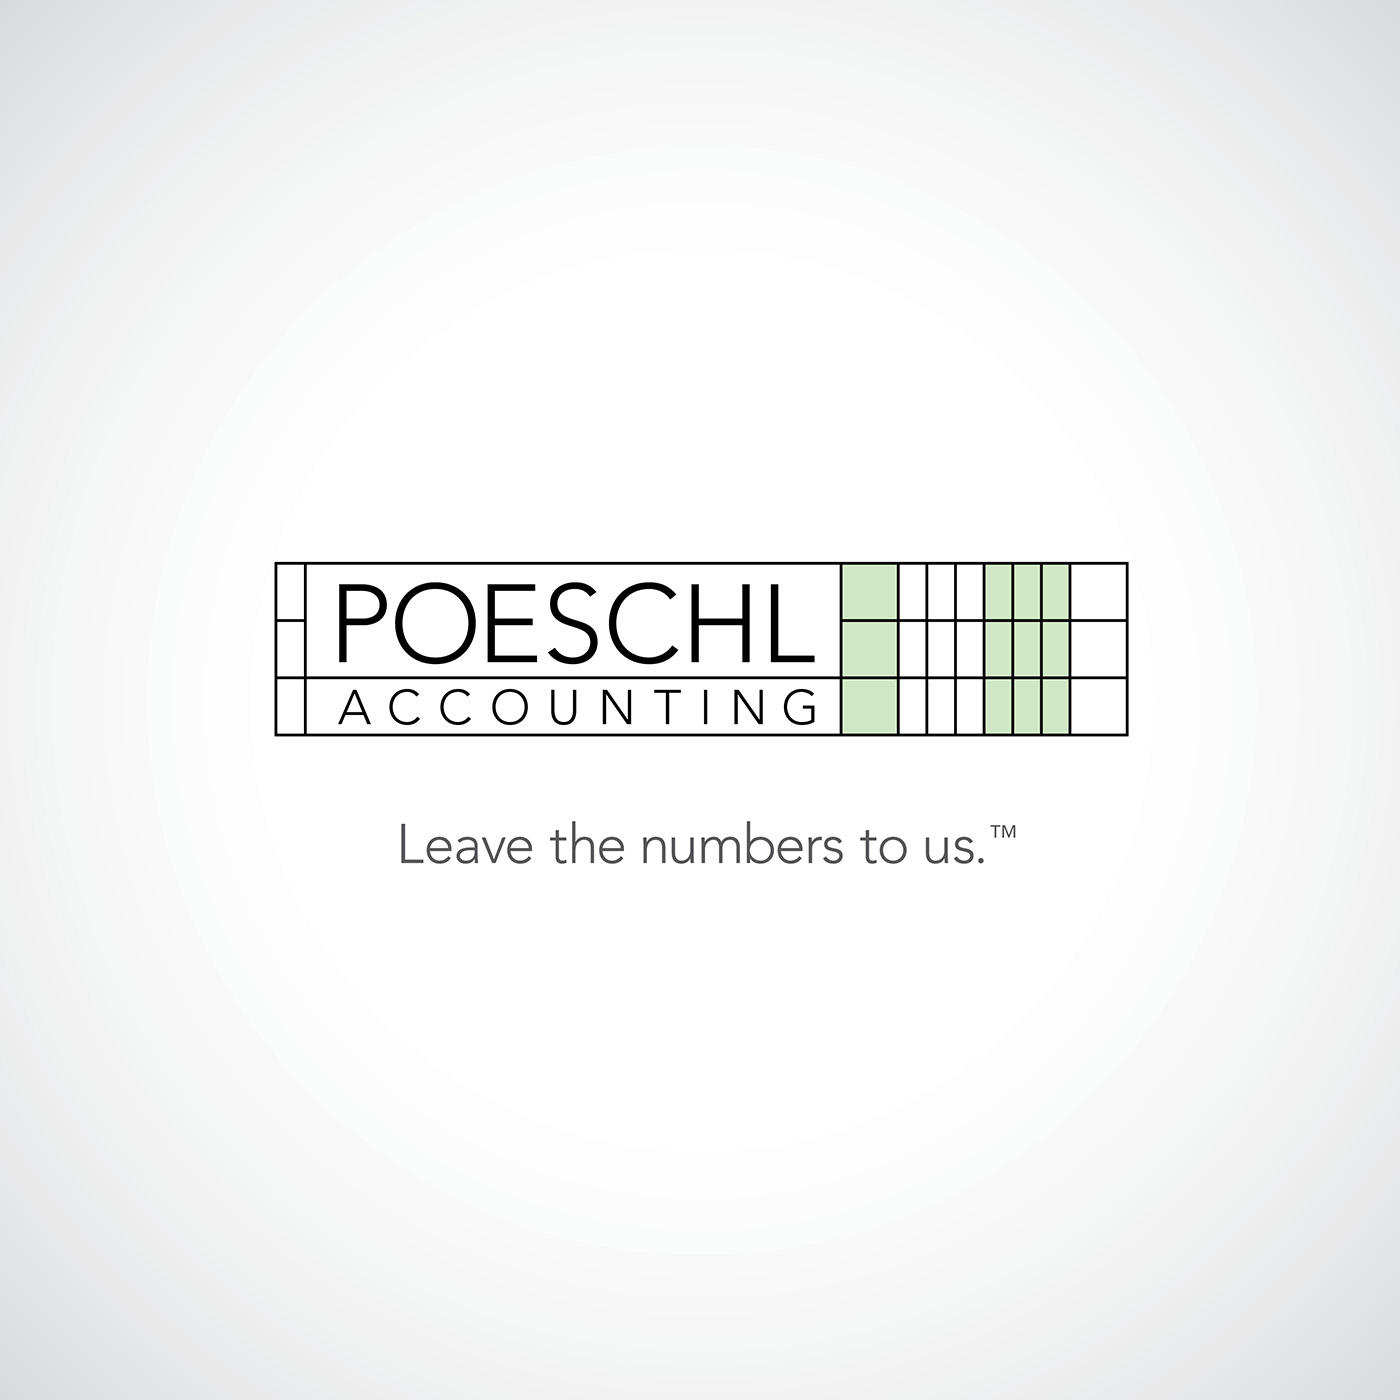 Poeschl Accounting